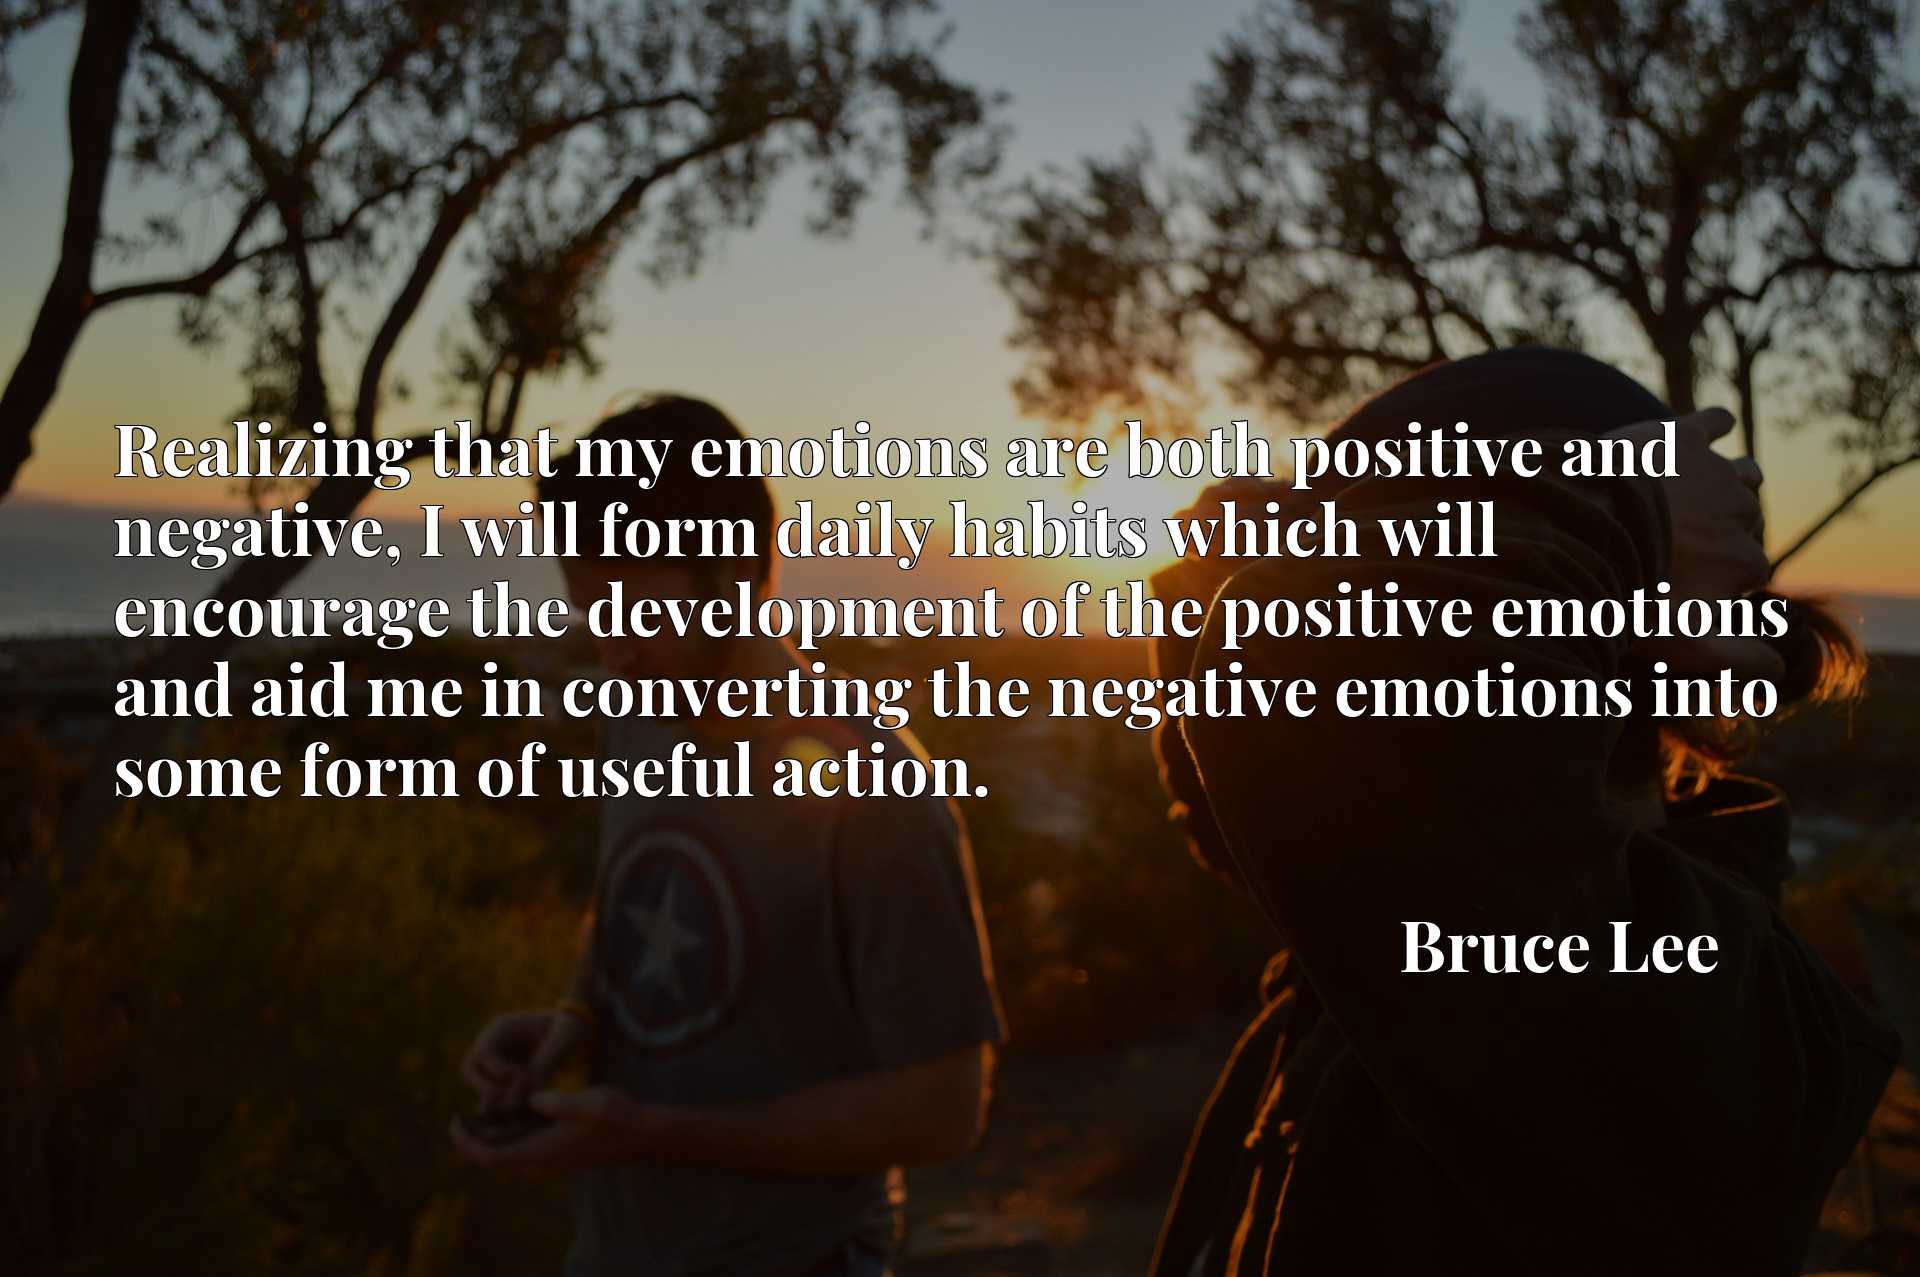 Realizing that my emotions are both positive and negative, I will form daily habits which will encourage the development of the positive emotions and aid me in converting the negative emotions into some form of useful action.